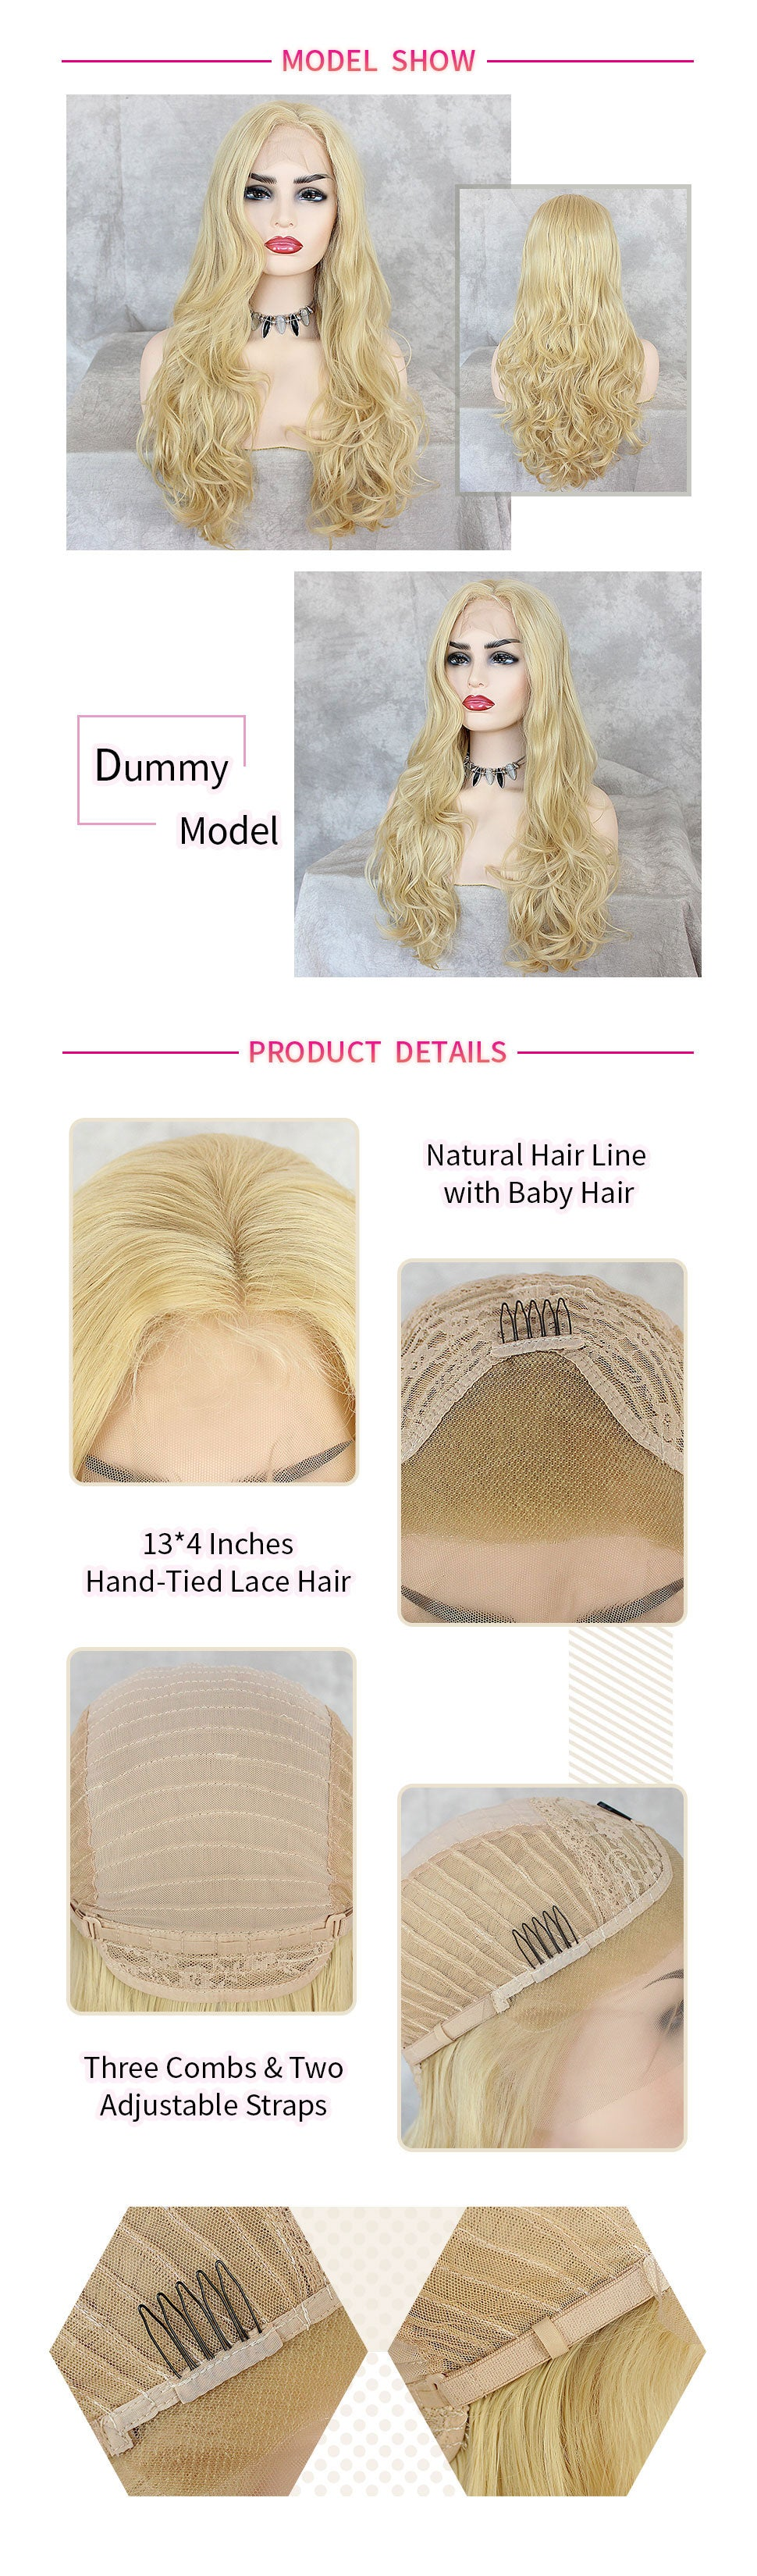 ReadyWig Blonde Body Wave Synthetic Lace Front Wig 24 Inches-hair details